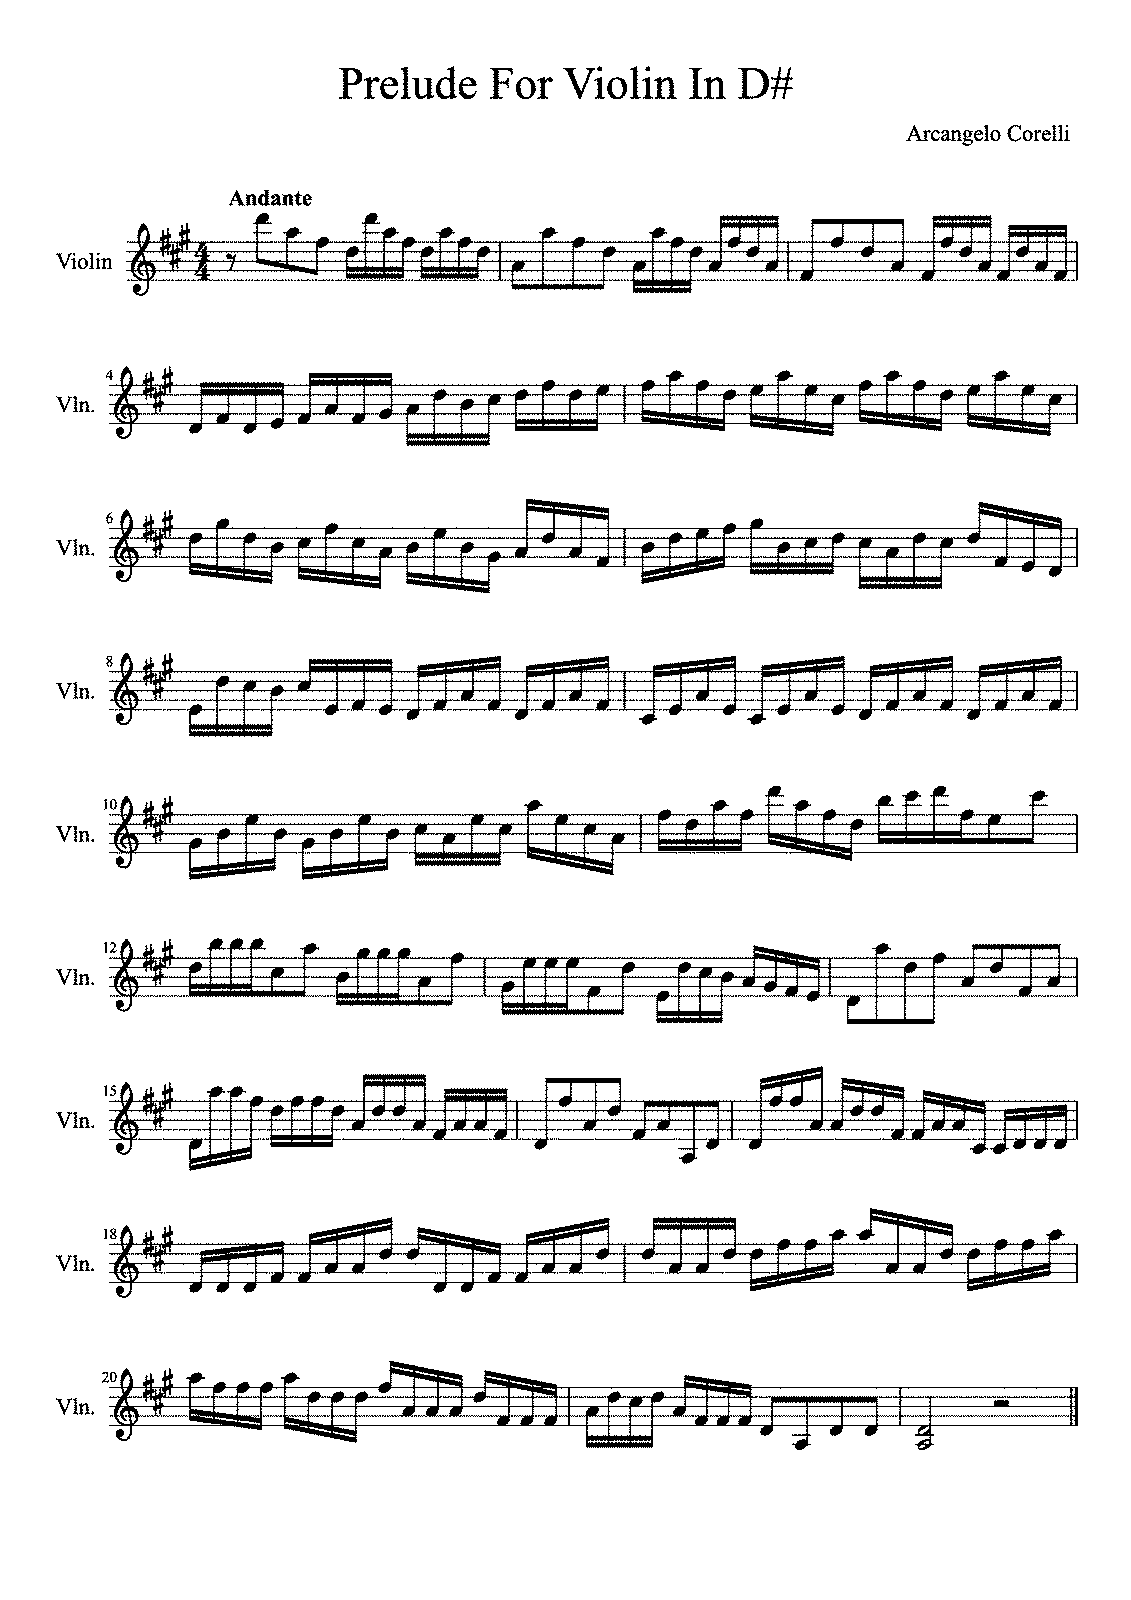 PMLP201723-Prelude For Violin In D Sharp Arcangelo Corelli.pdf